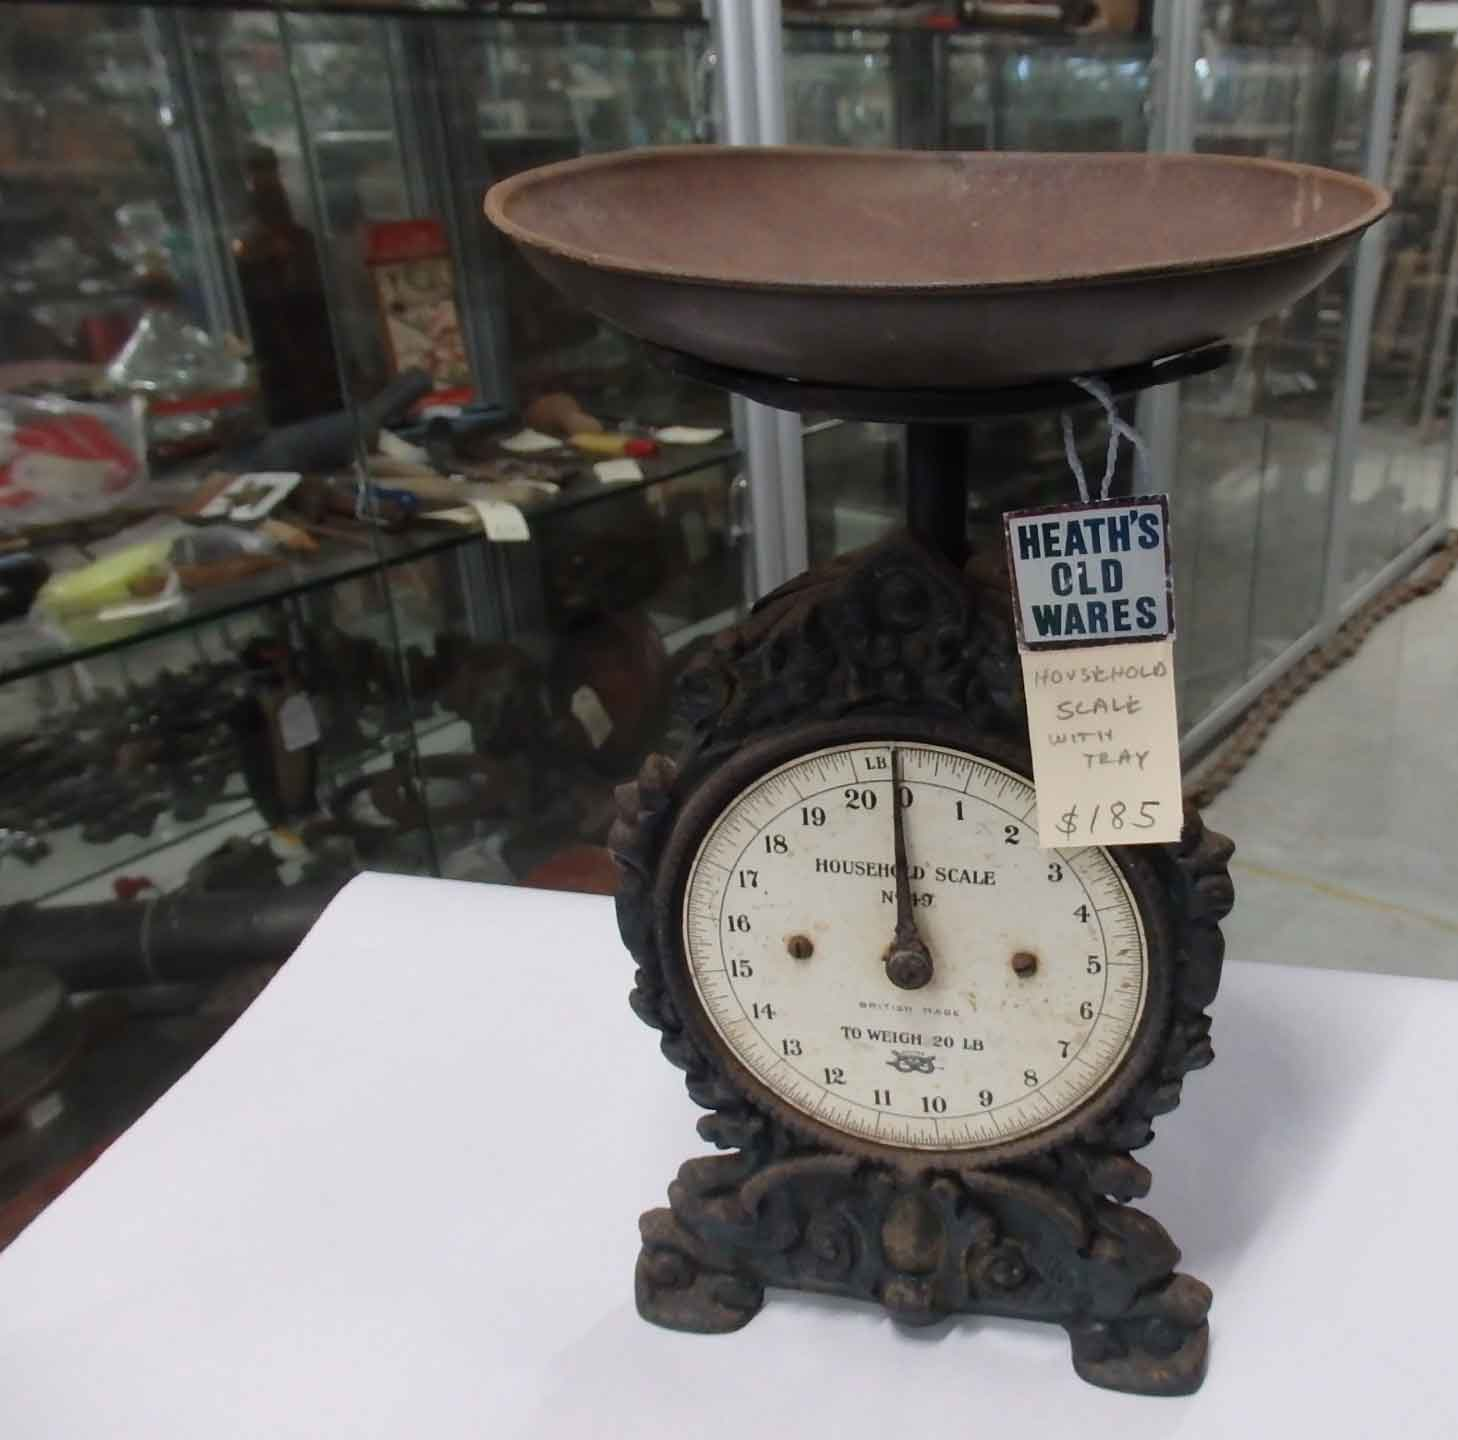 Clock face Household Scales No. 49 $185 for sale at Heaths Old Wares, Collectables, Antiques & Industrial Antiques, 19-21 Broadway, Burringbar NSW 2483 Ph 0266771181 open 7 days